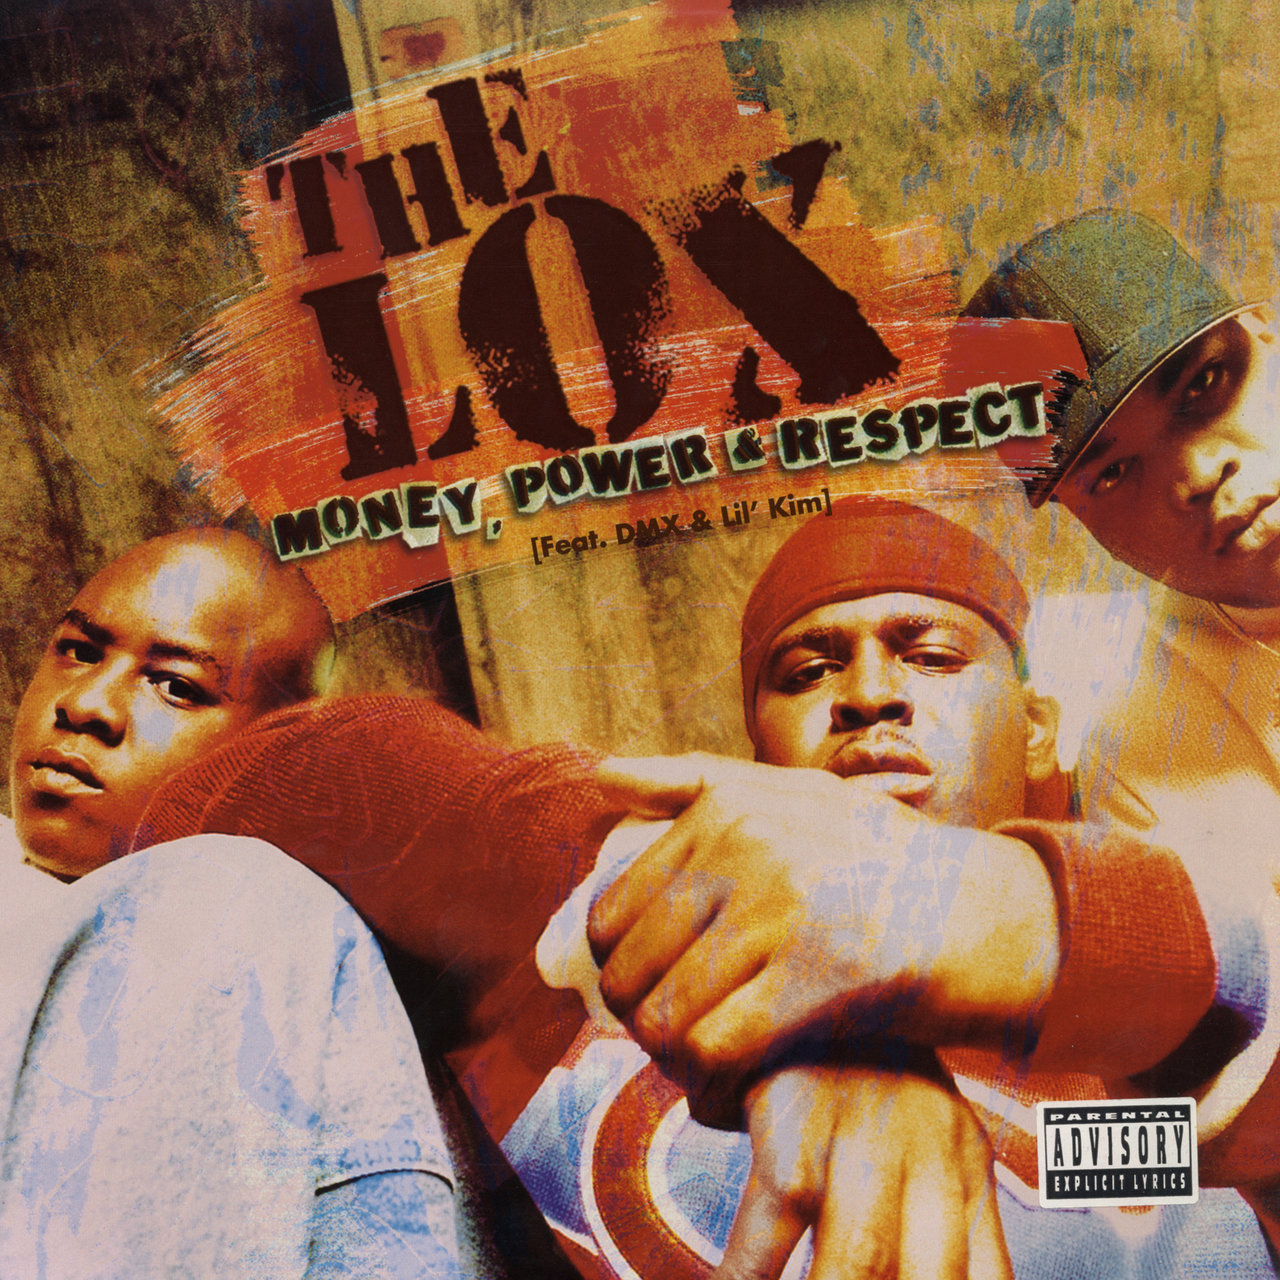 Money, Power & Respect [Mixes]